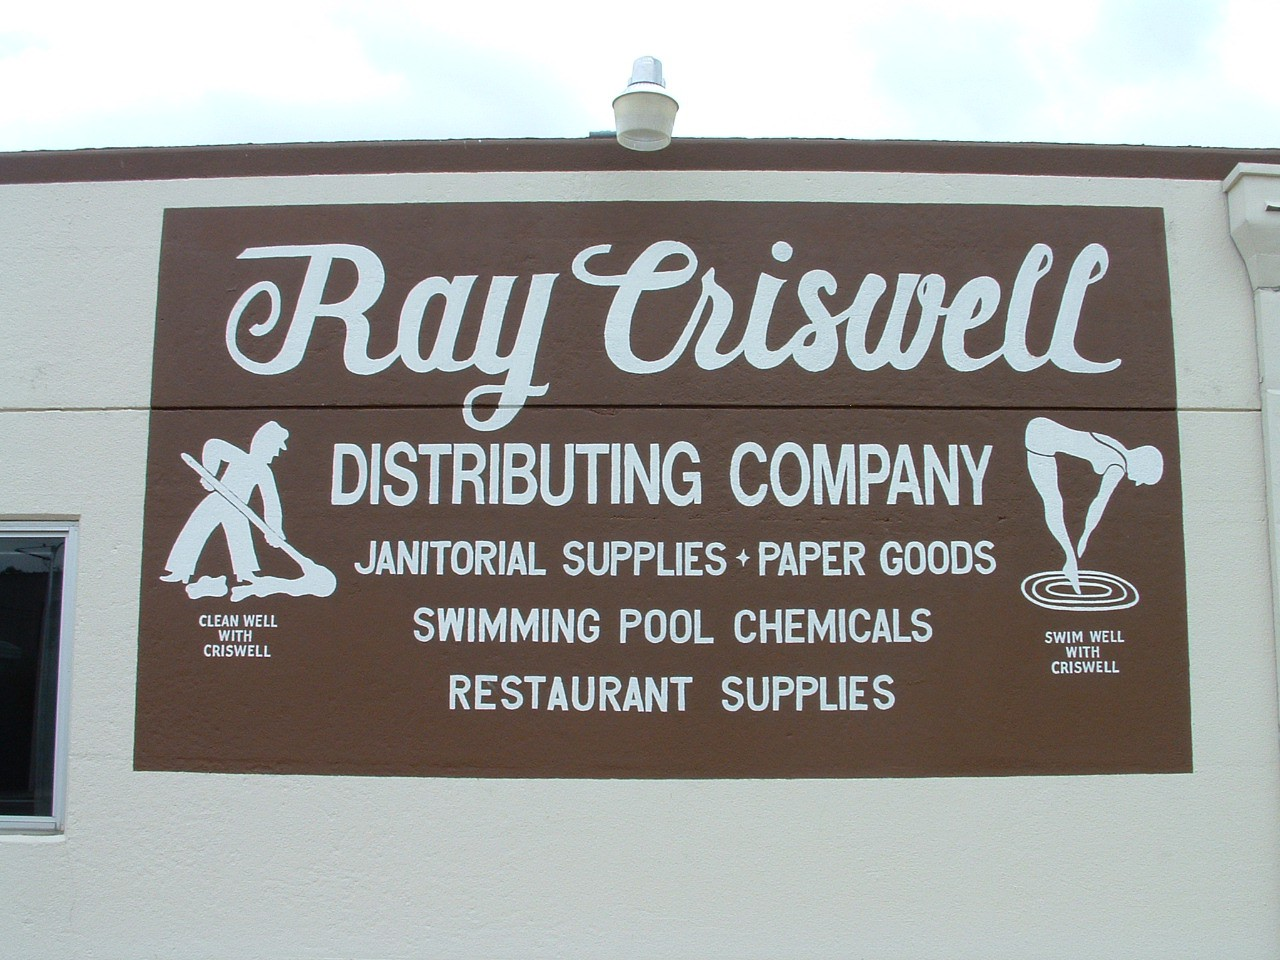 Welcome To Ray Criswell Distributing Company